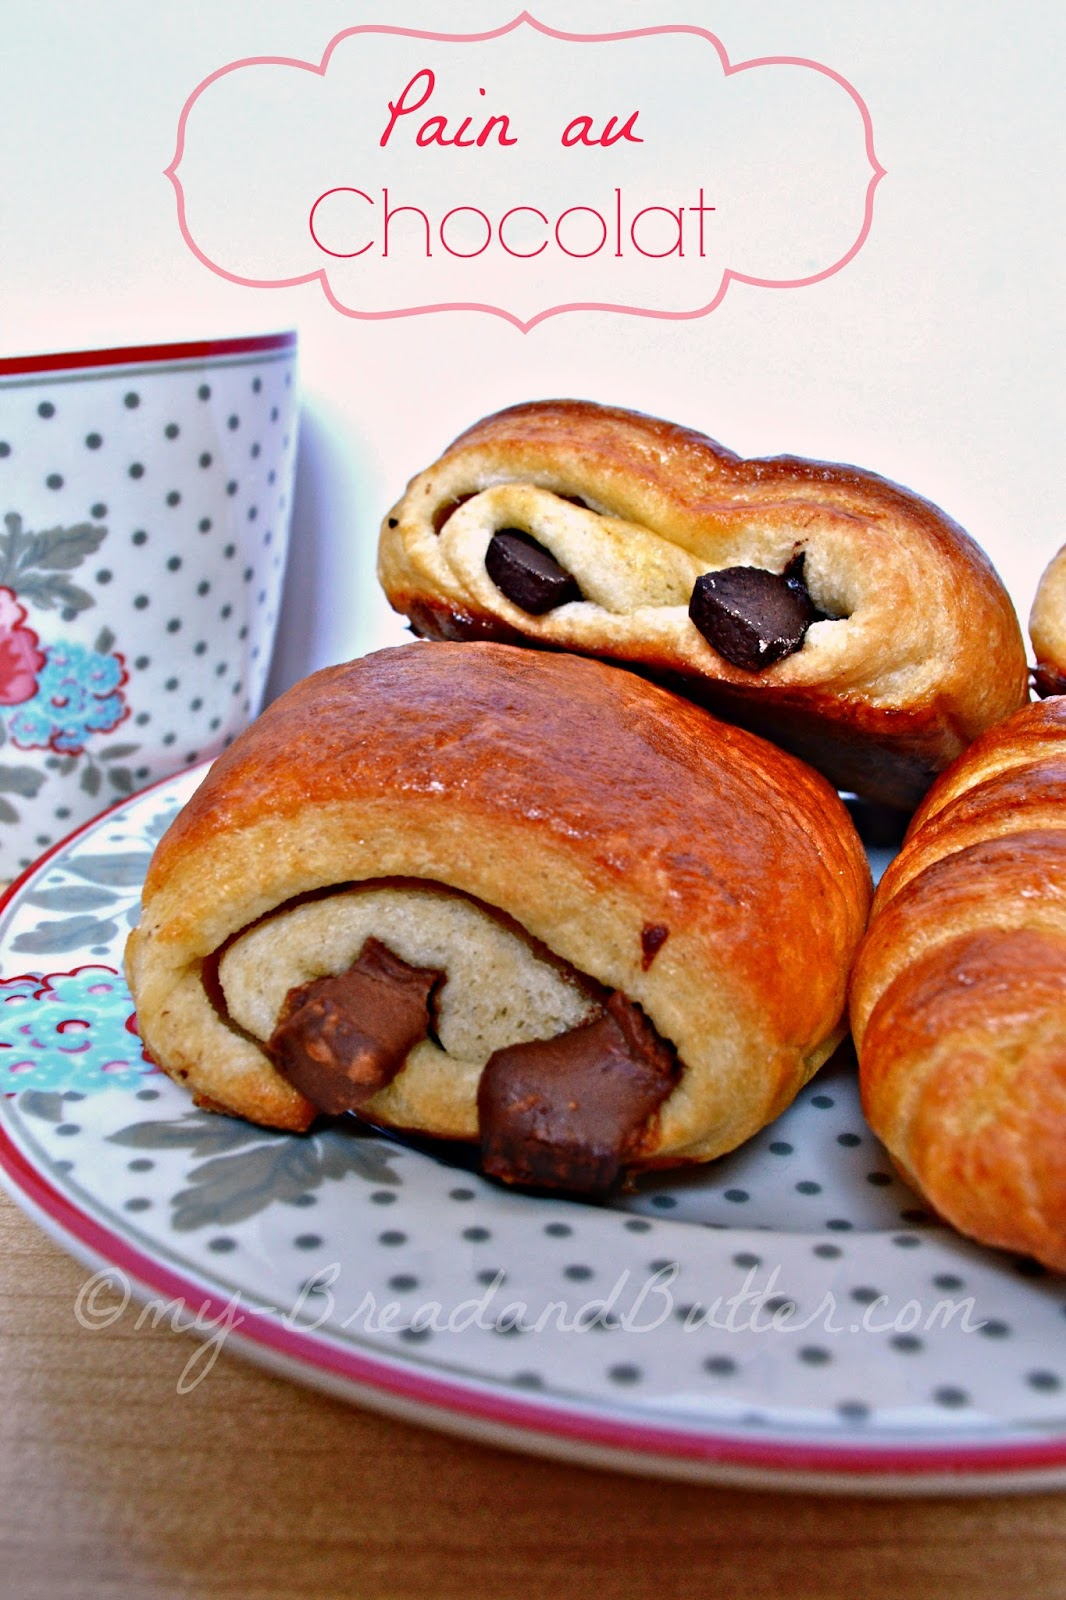 Bread and Butter.....: Pain au chocolat e croissants francesi!